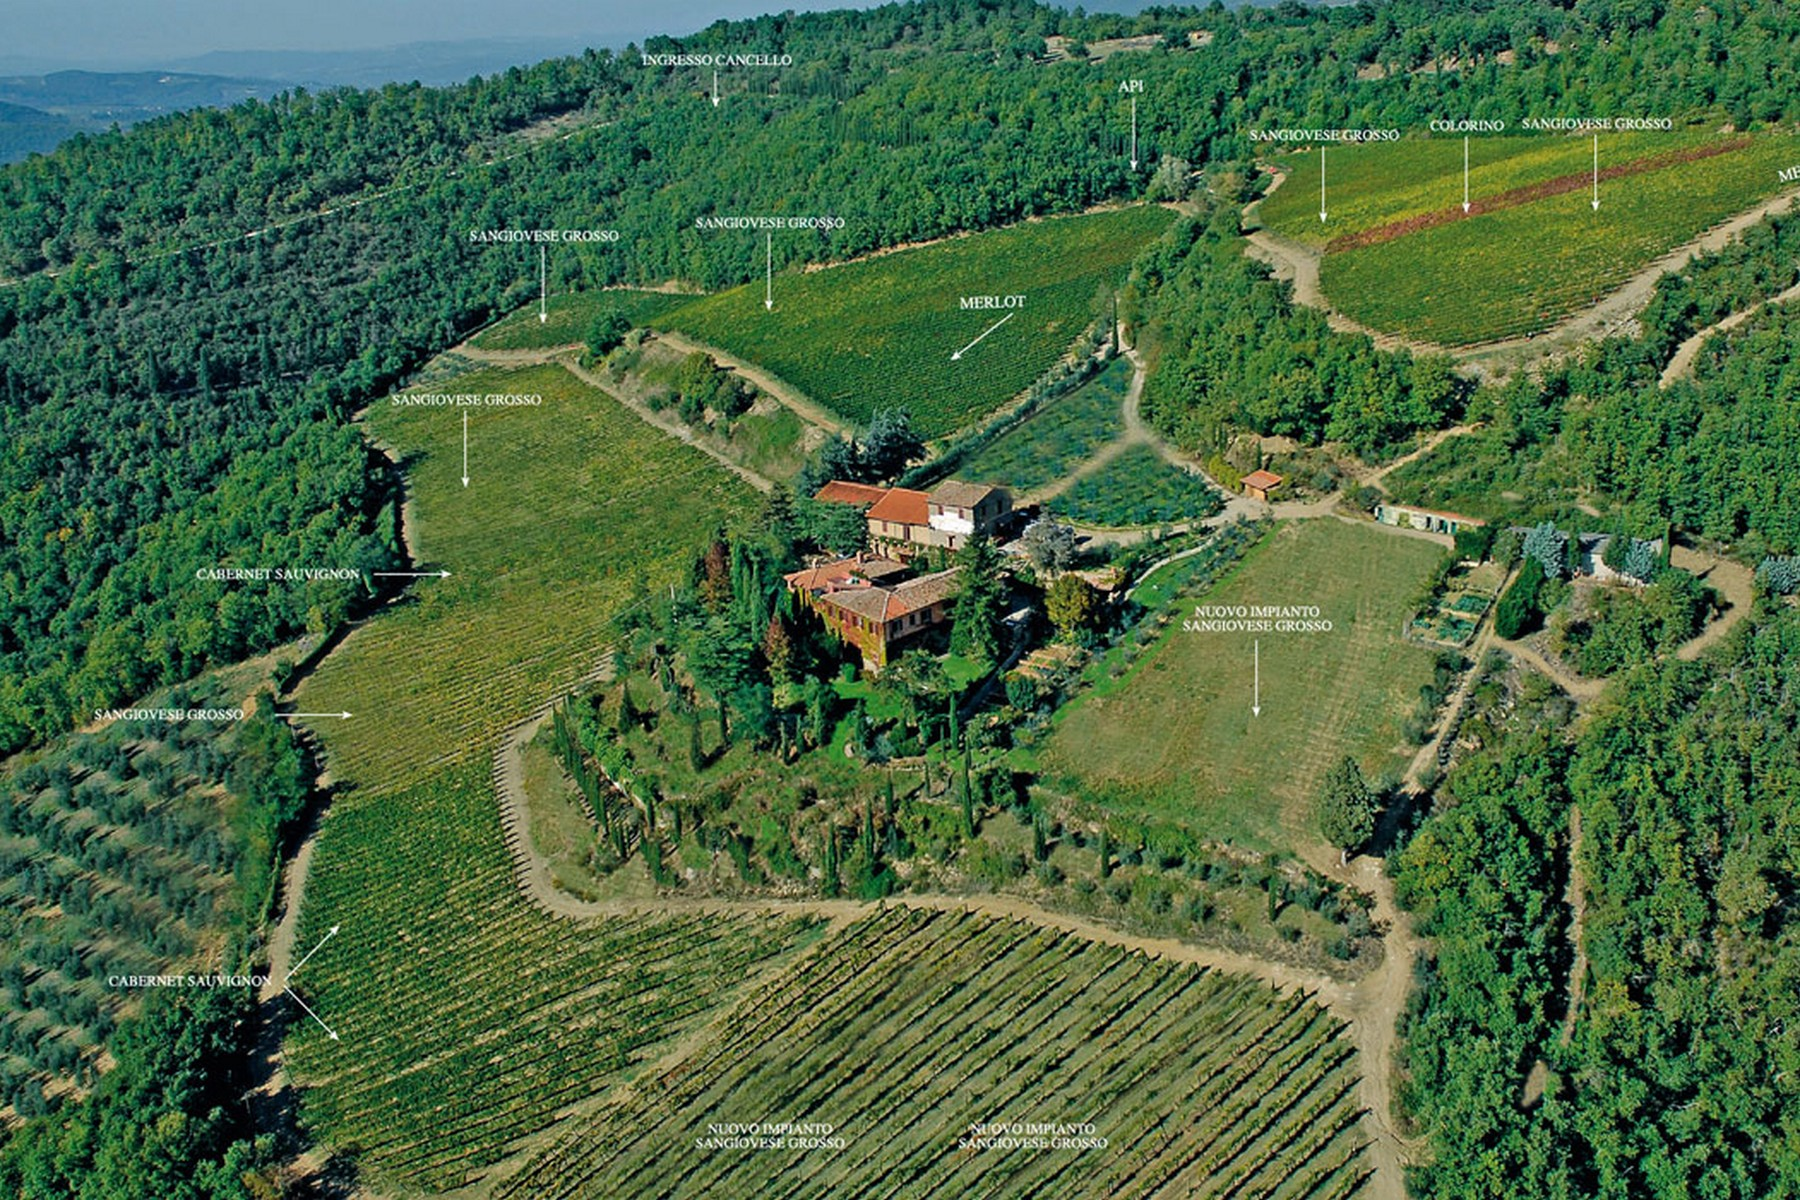 Single Family Home for Sale at Chianti vineyard and villa Via San Leonino Panzano In Chianti, Florence 50022 Italy